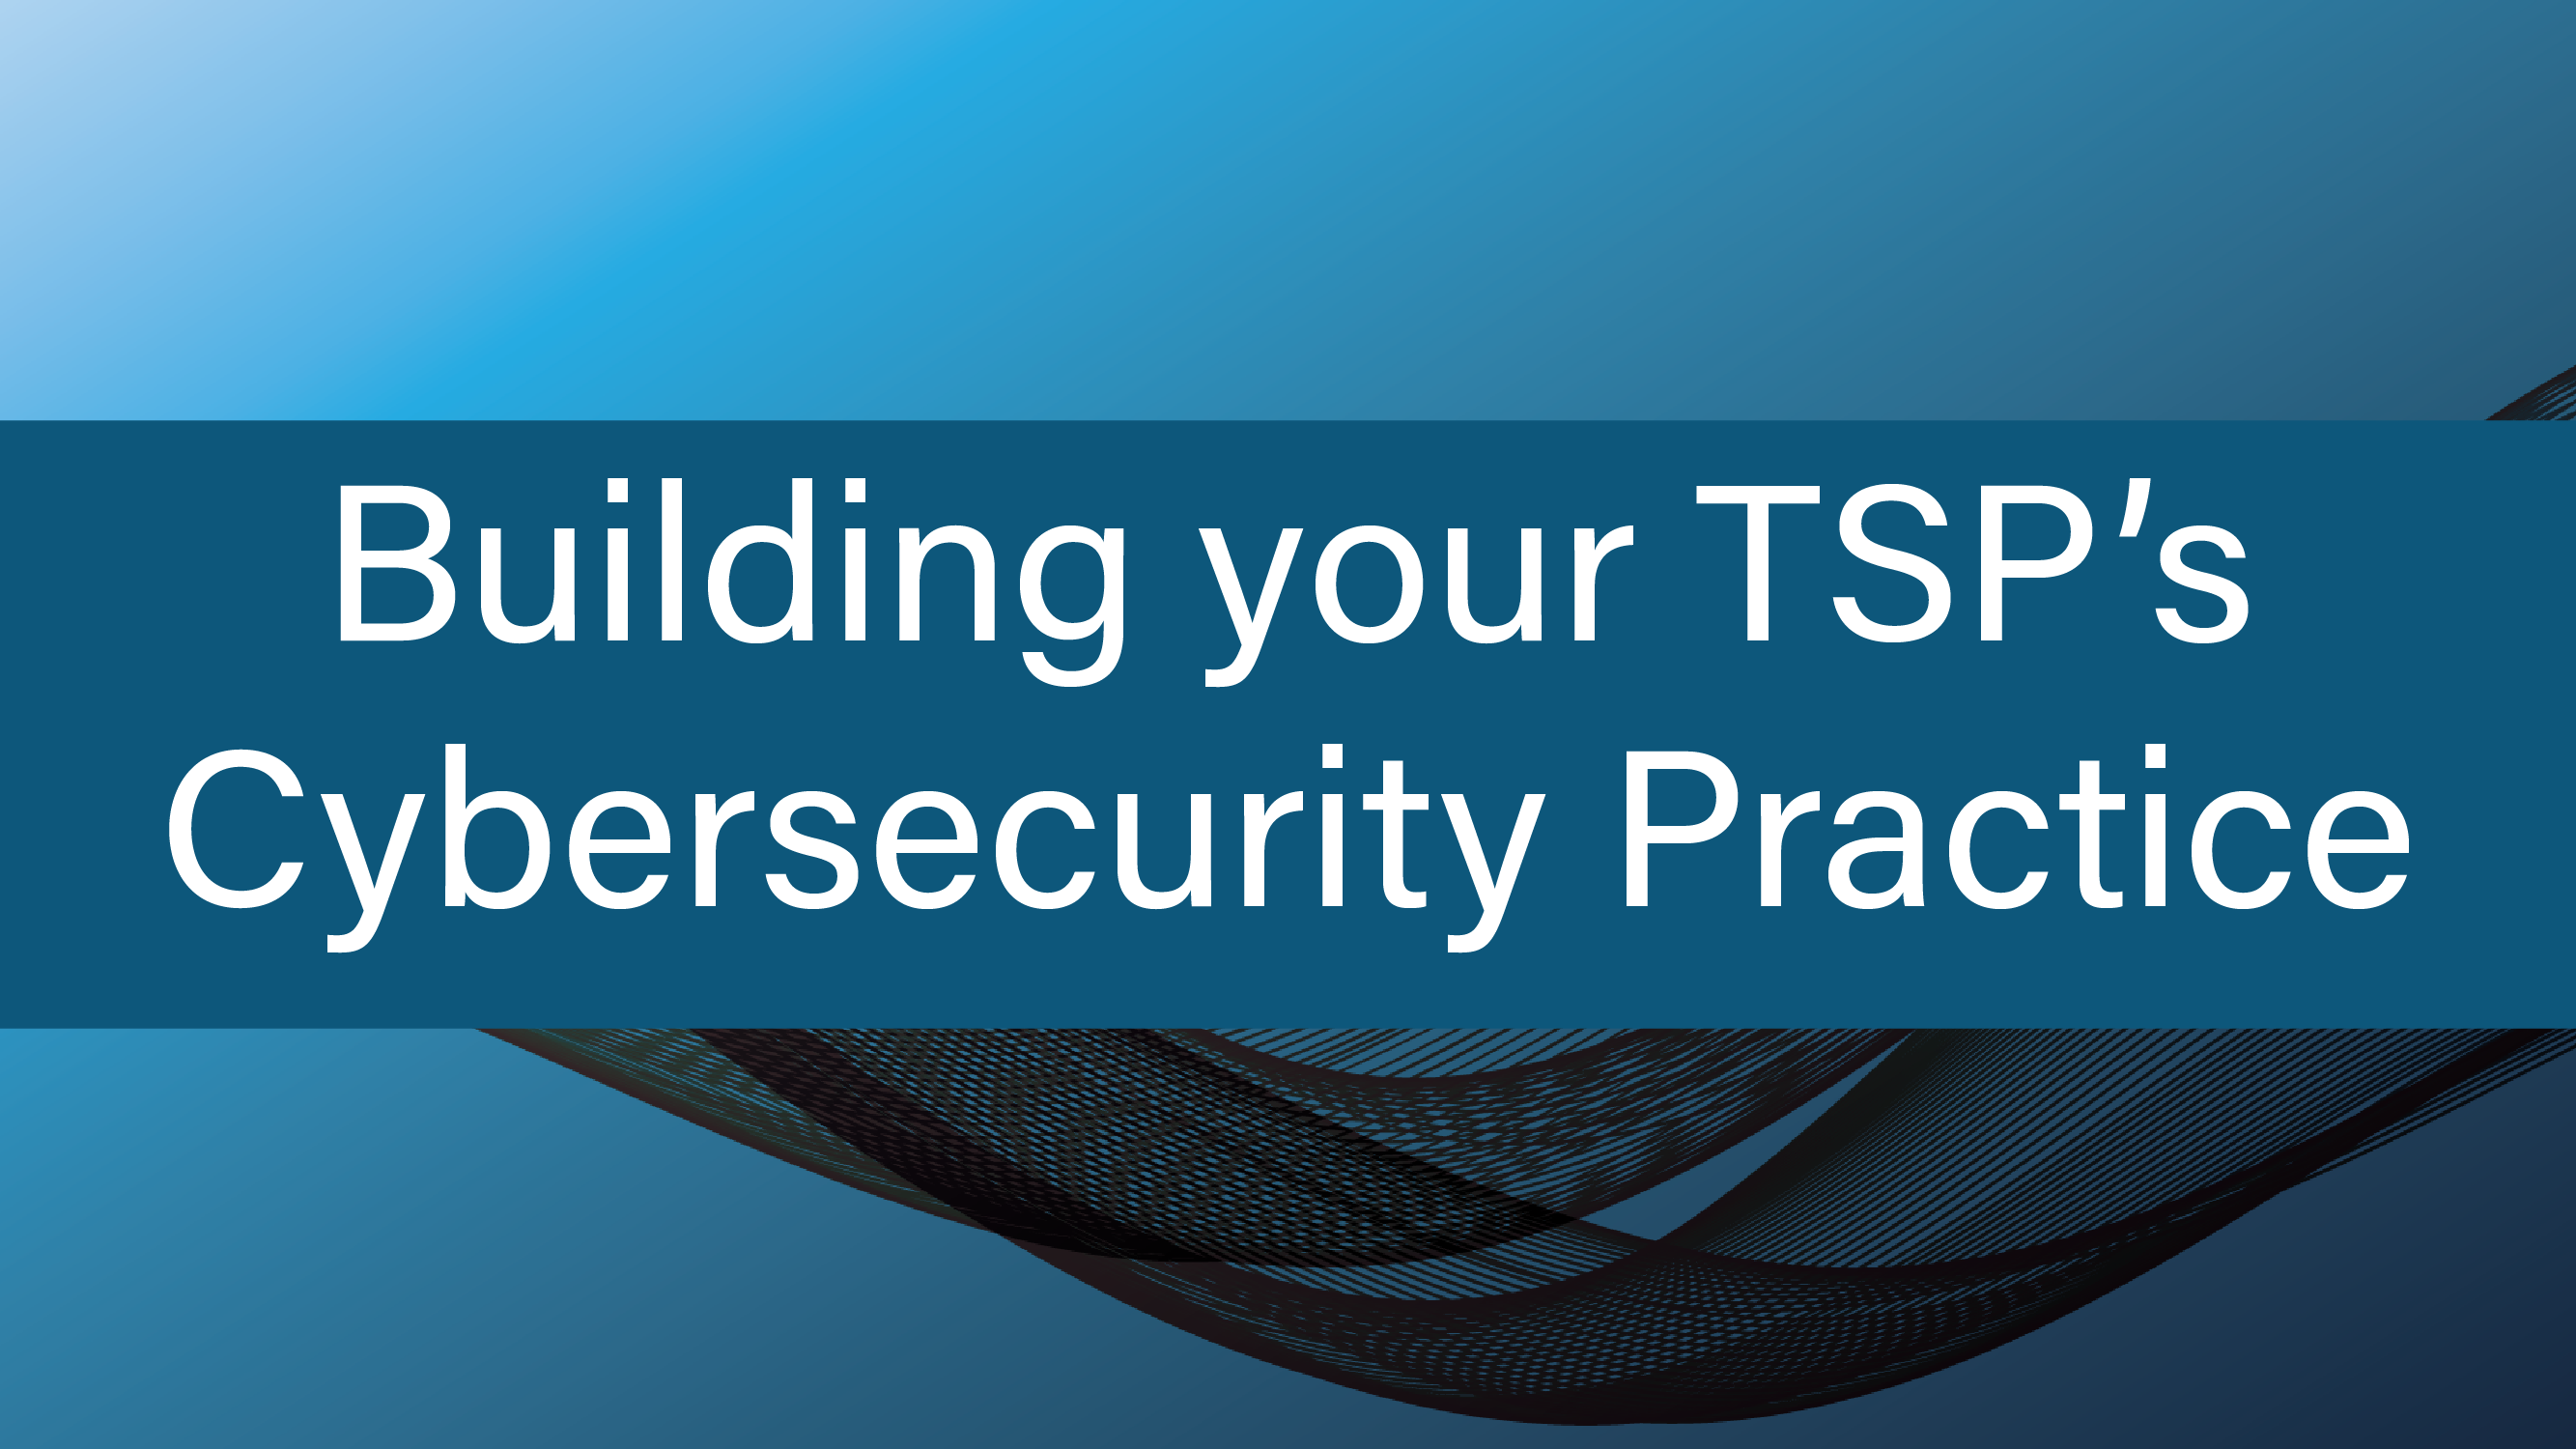 Building your TSP's Cybersecurity Practice